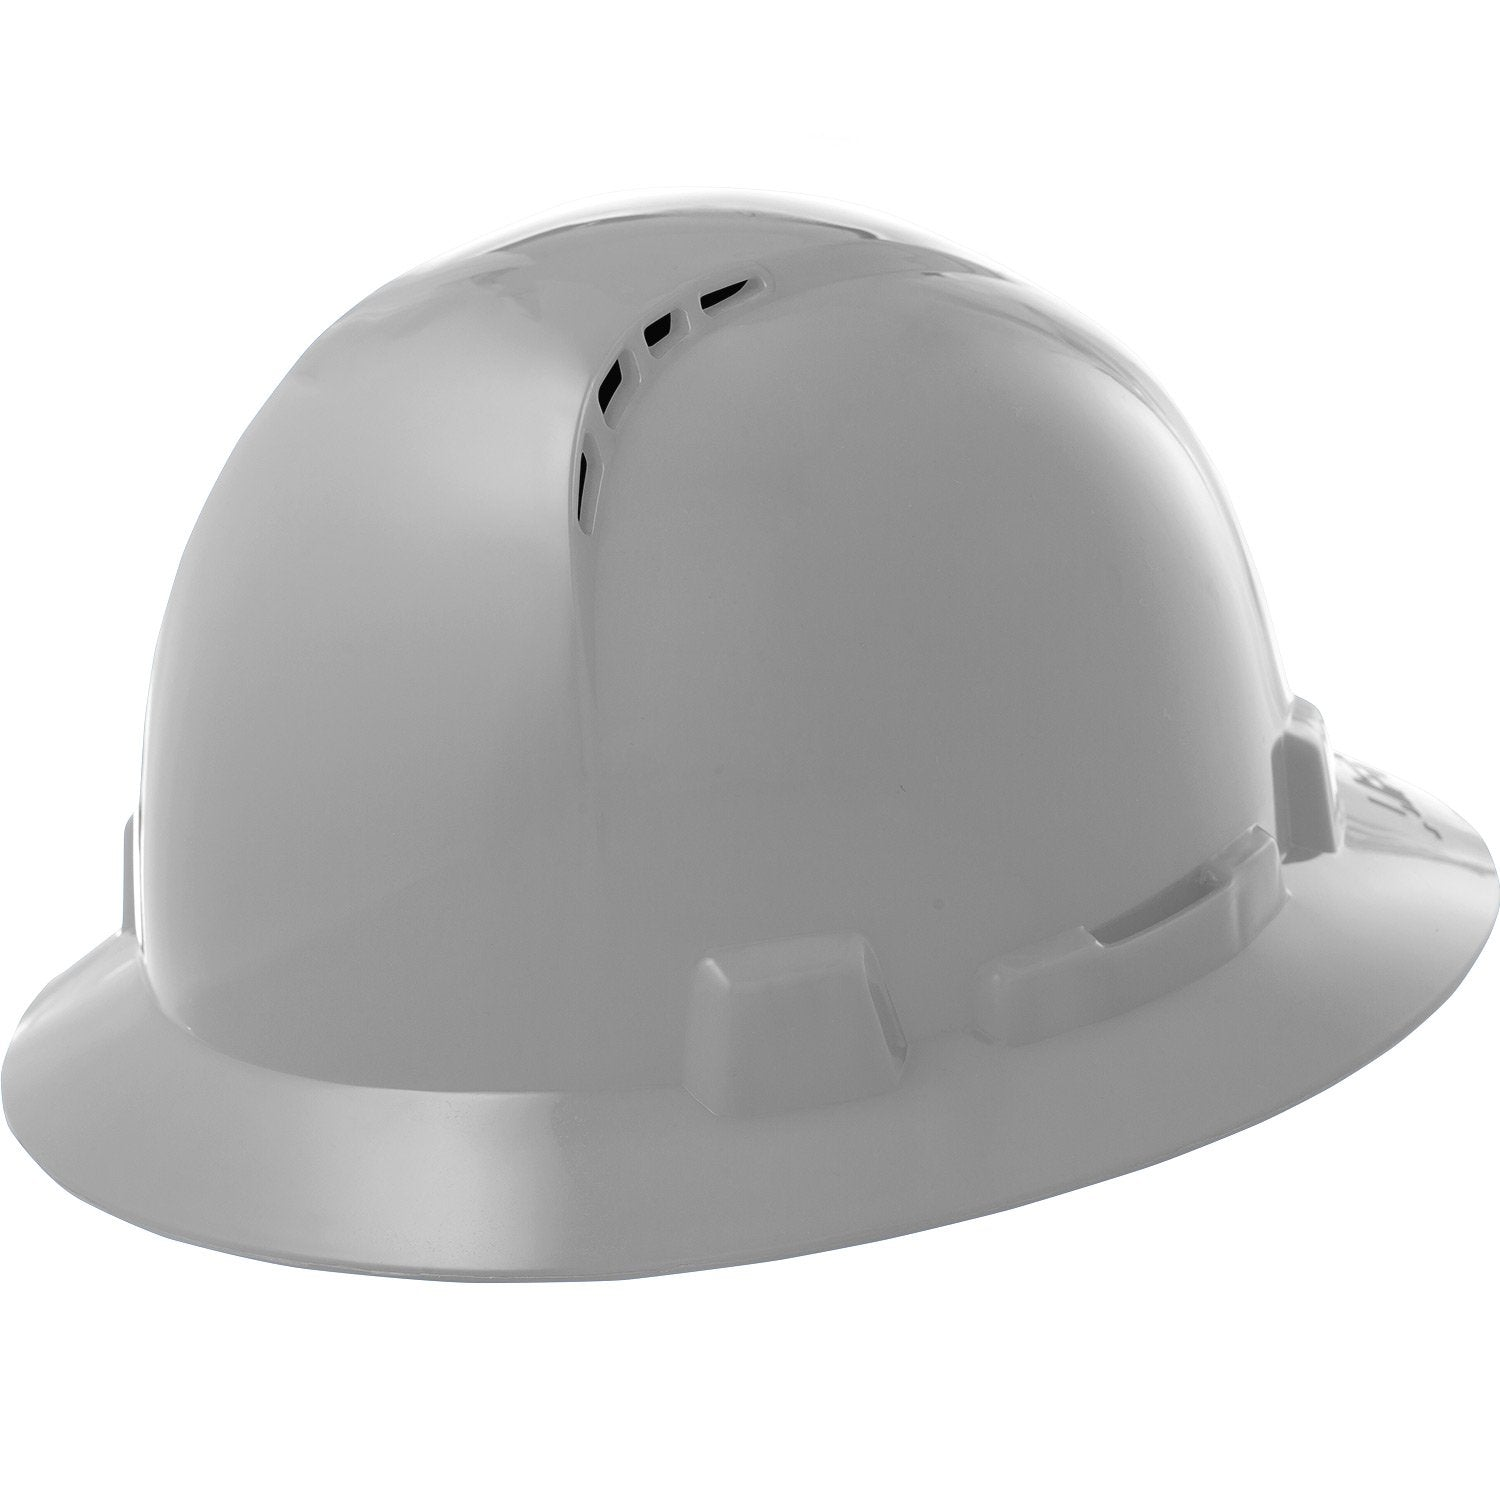 ef66f4f61a1 Lift Safety - Briggs Vented Full Brim Hard Hats - MTN SHOP